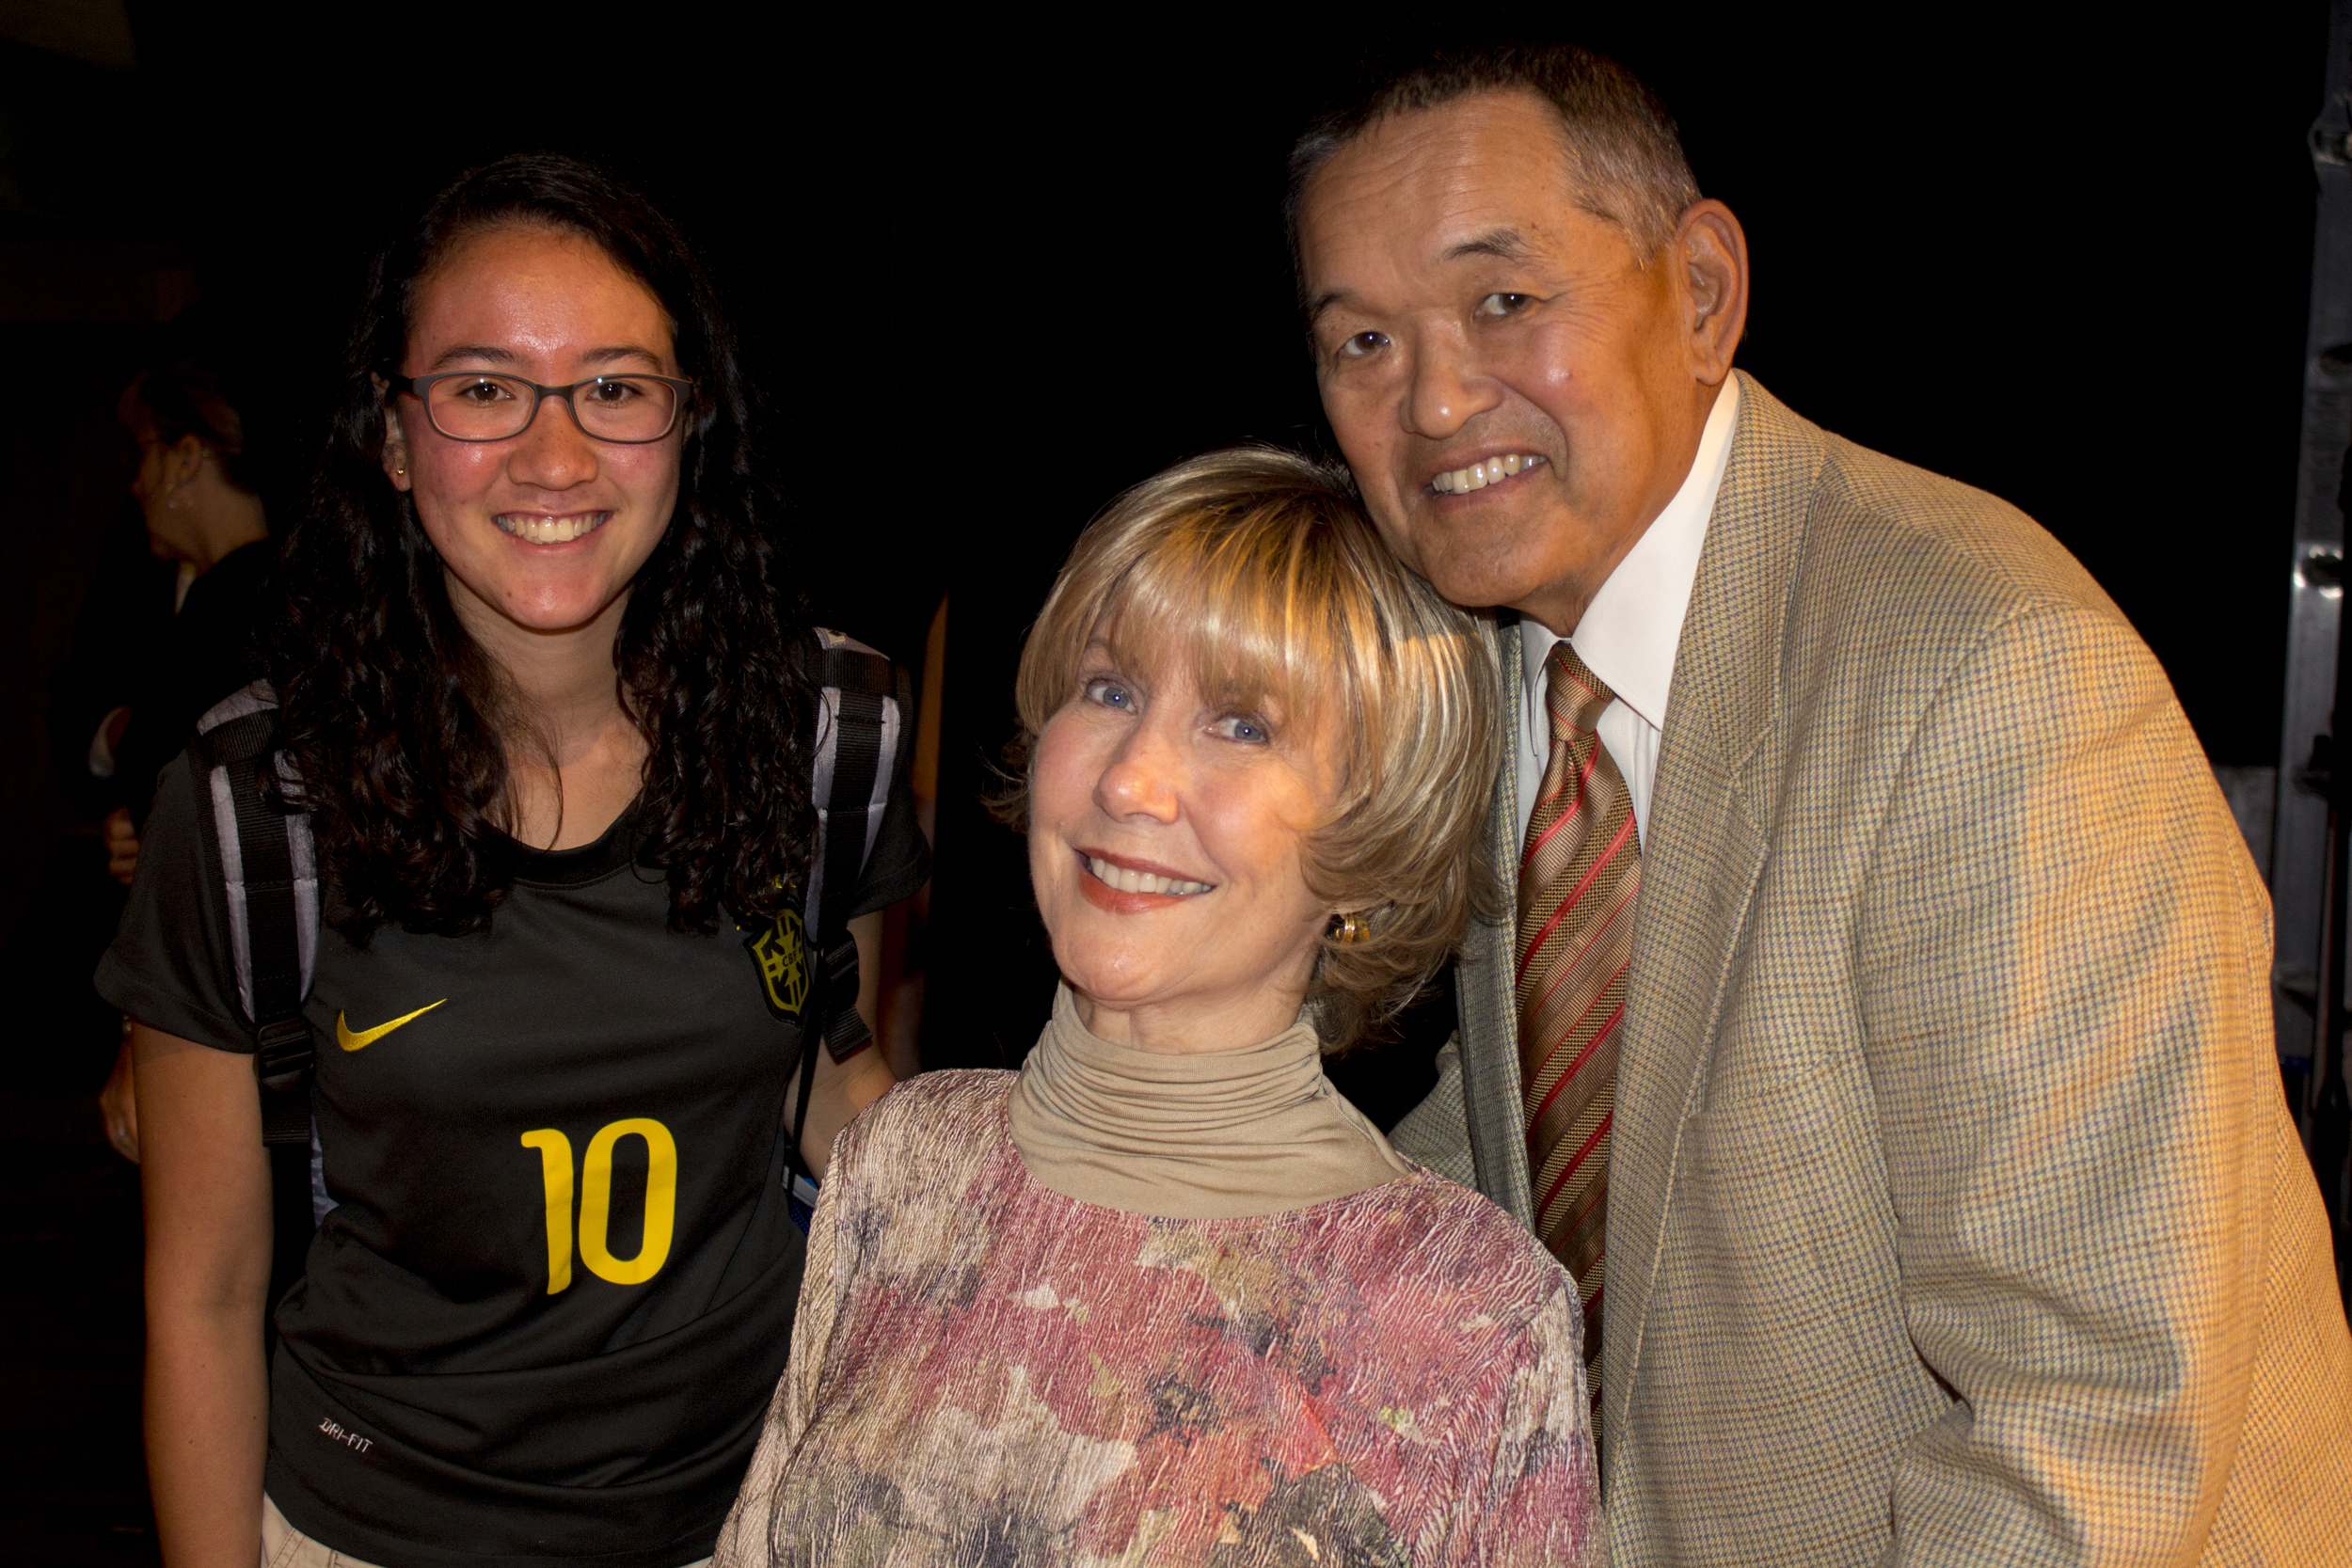 Joni Eareckson Tada spent time withs students after speaking at chapel, even posing for pictures, like sophomore Alisa Sandlin and Tada's husband, Ken.